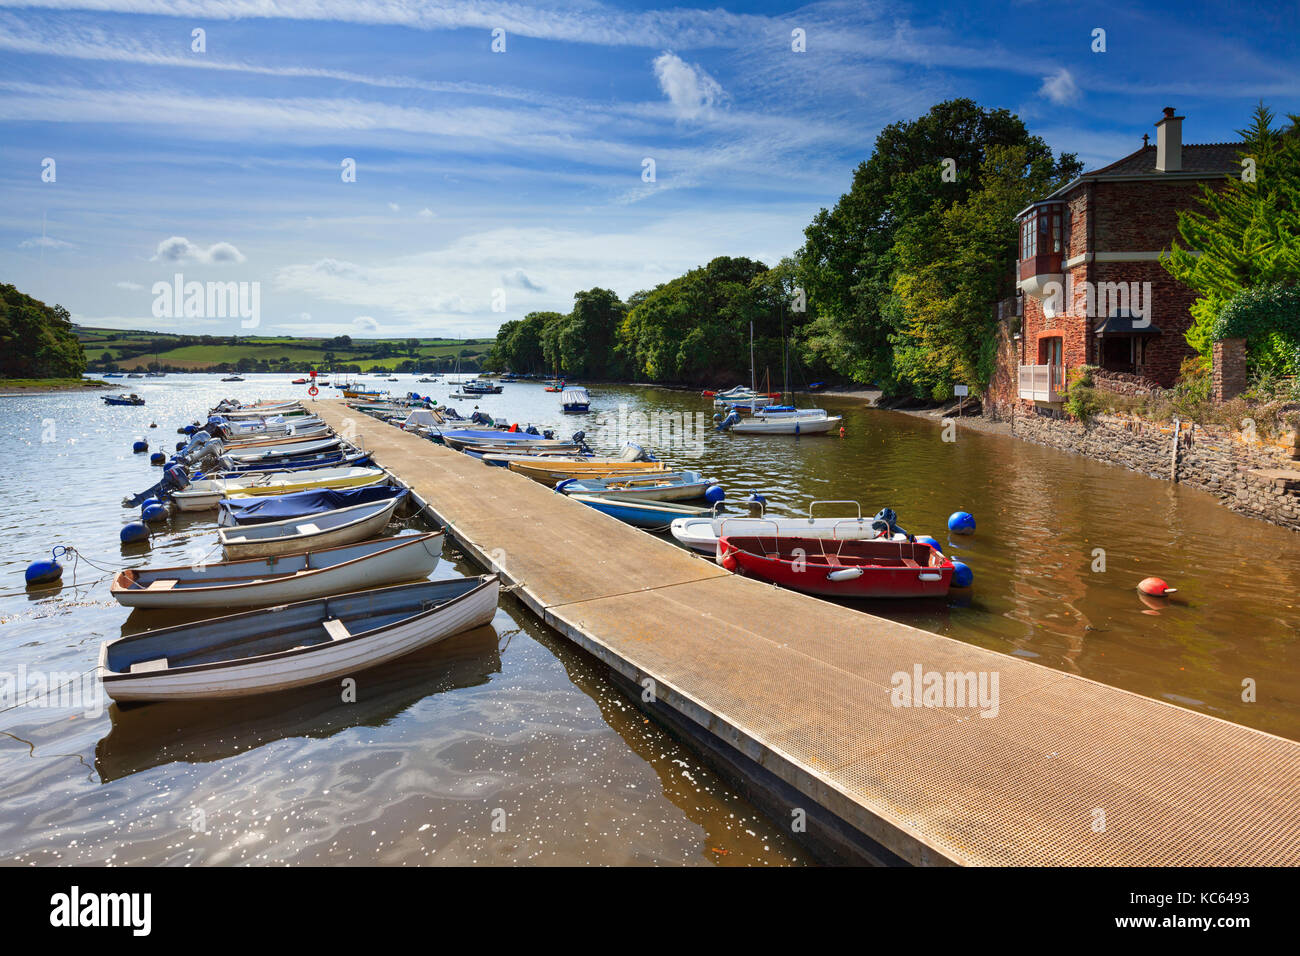 Boats at Stoke Gabriel on the River Dart in South Devon. - Stock Image